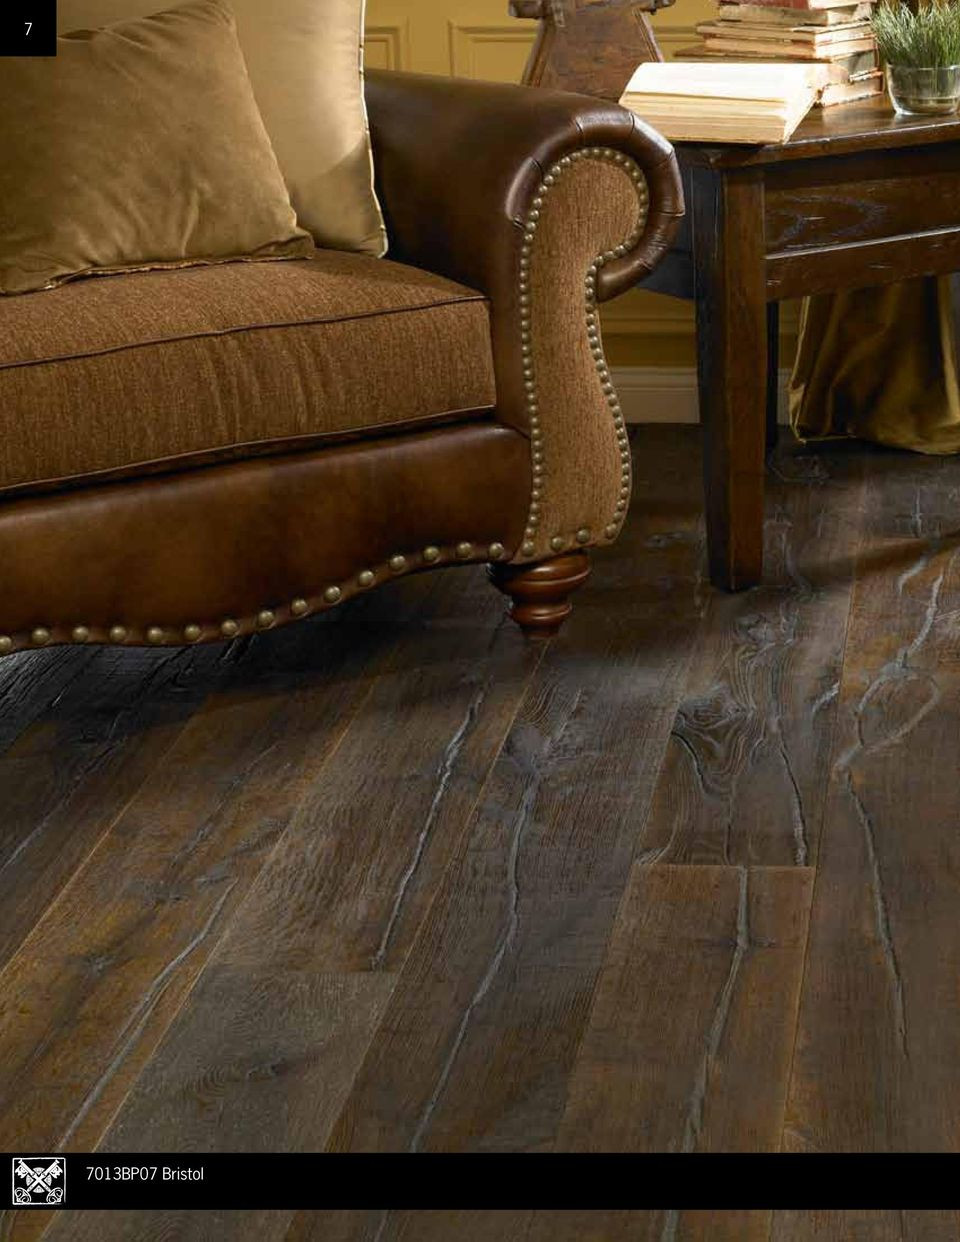 Lifescapes Hardwood Flooring Reviews Of Make Any Home A Castle Pdf Pertaining to Bristol